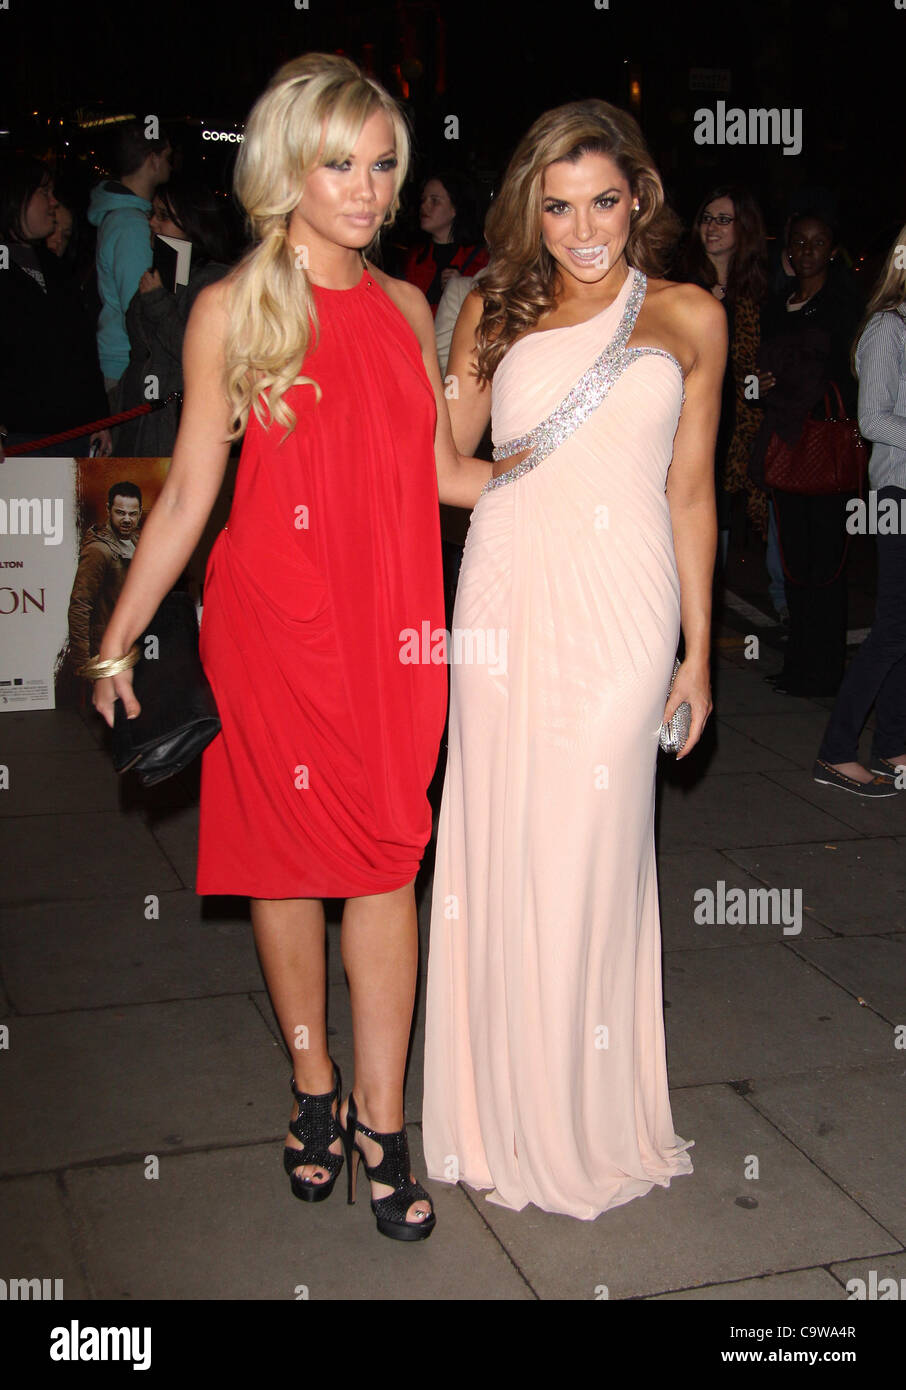 London, UK, 23/02/2012 Louise Glover ( R ) arrives for the 'Deviation' world premiere at the Odeon Covent - Stock Image